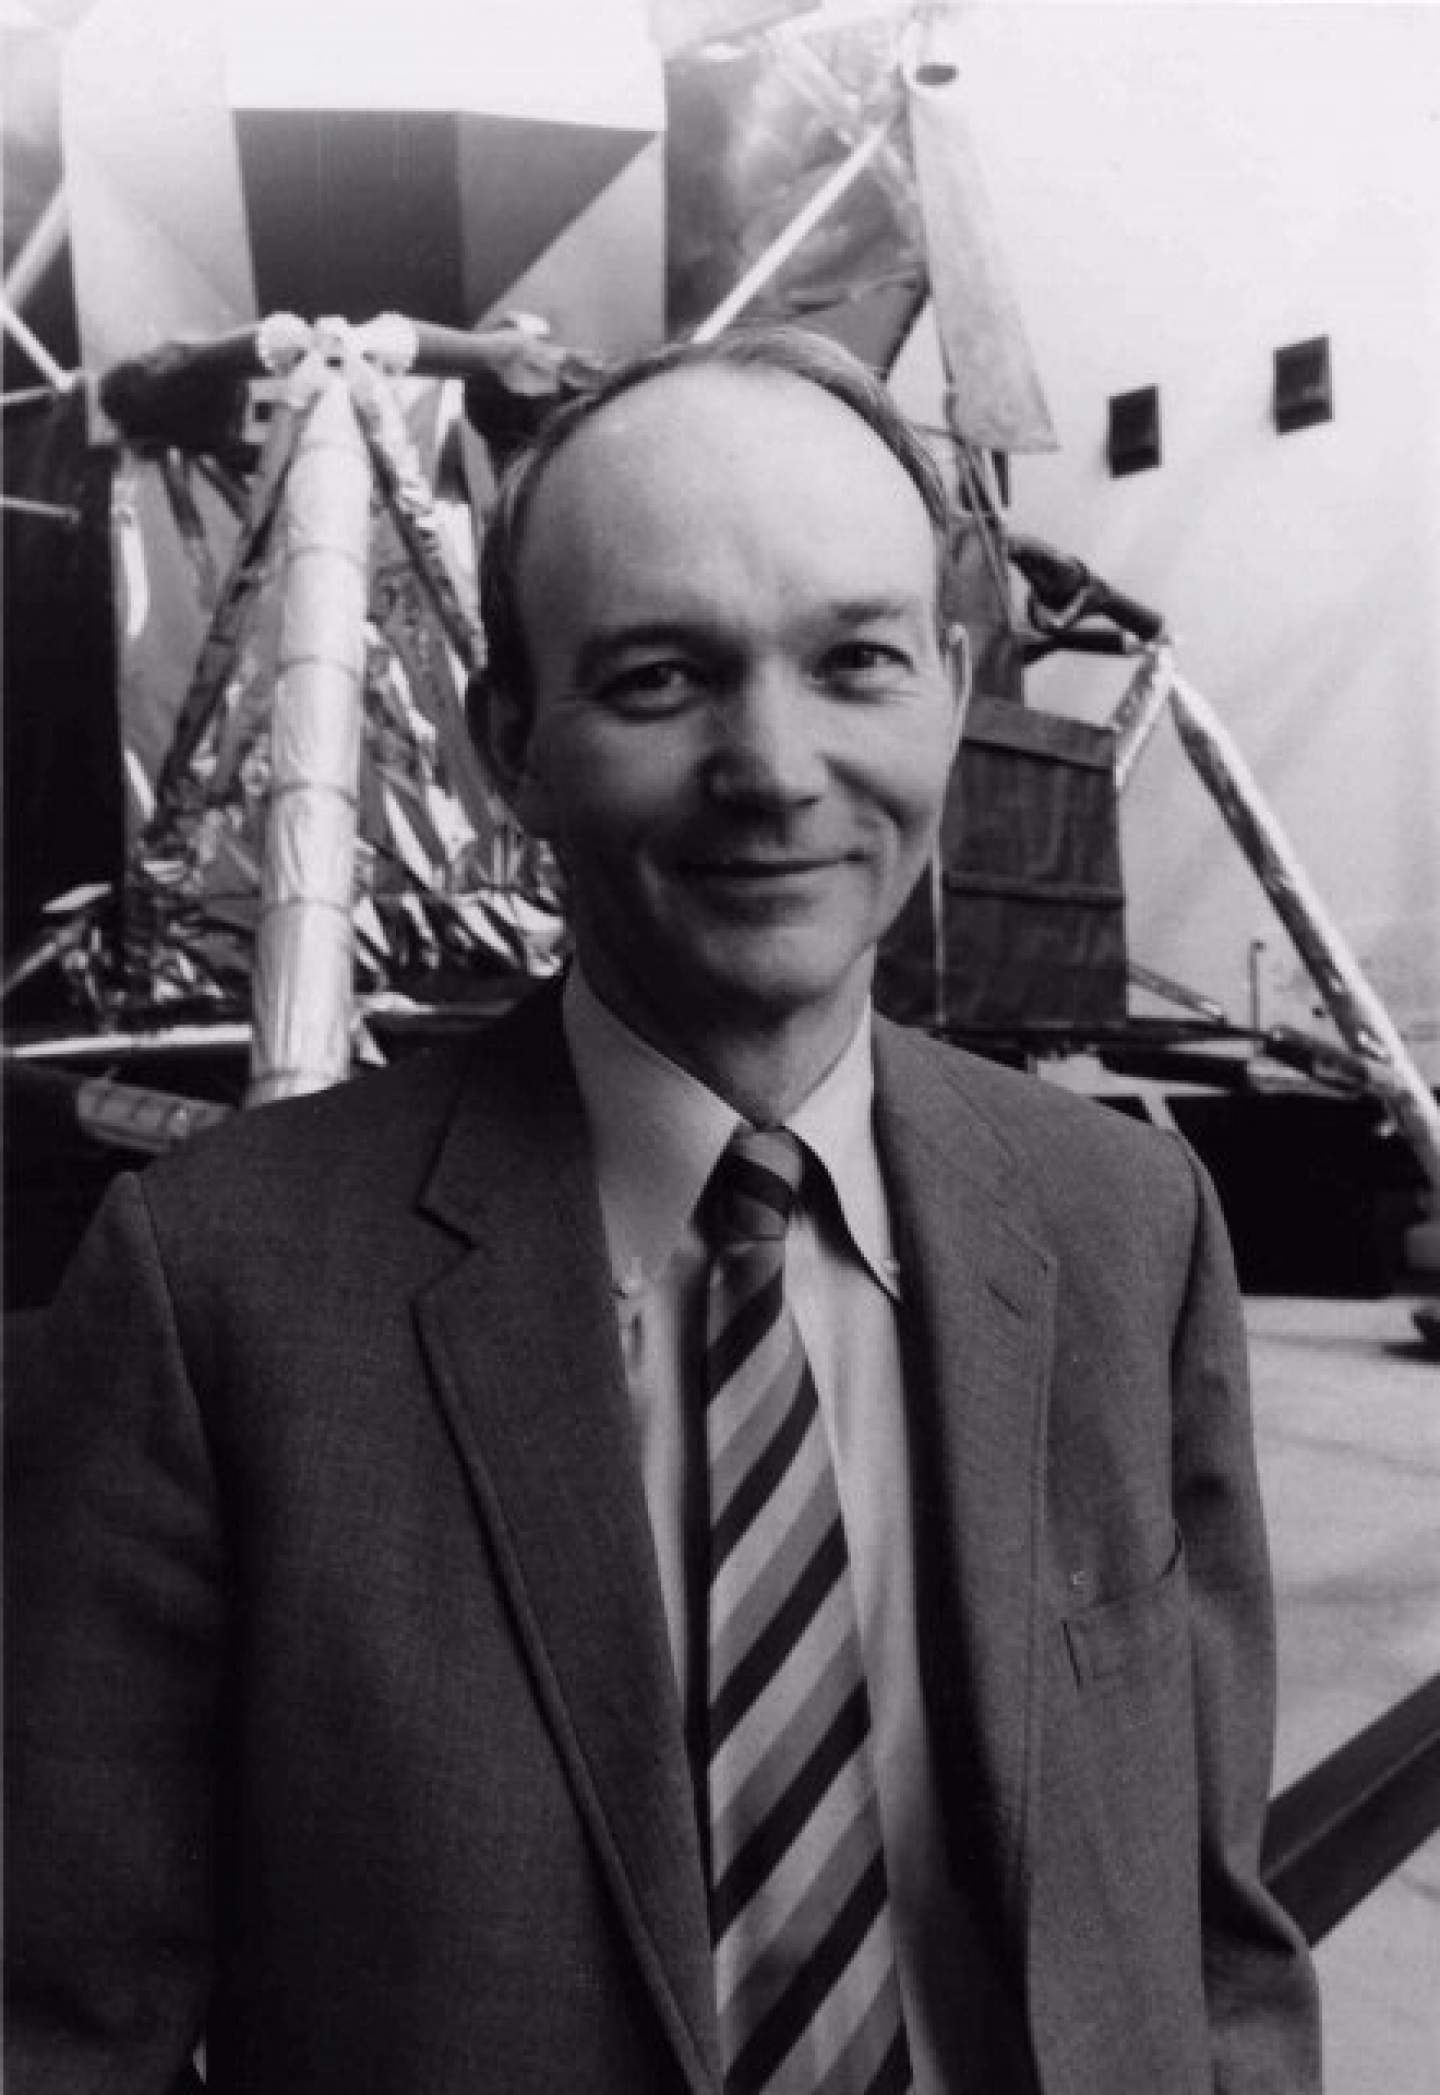 Michael Collins, Apollo 11 Command Module Pilot, served as the first director of the National Air and Space Museum.